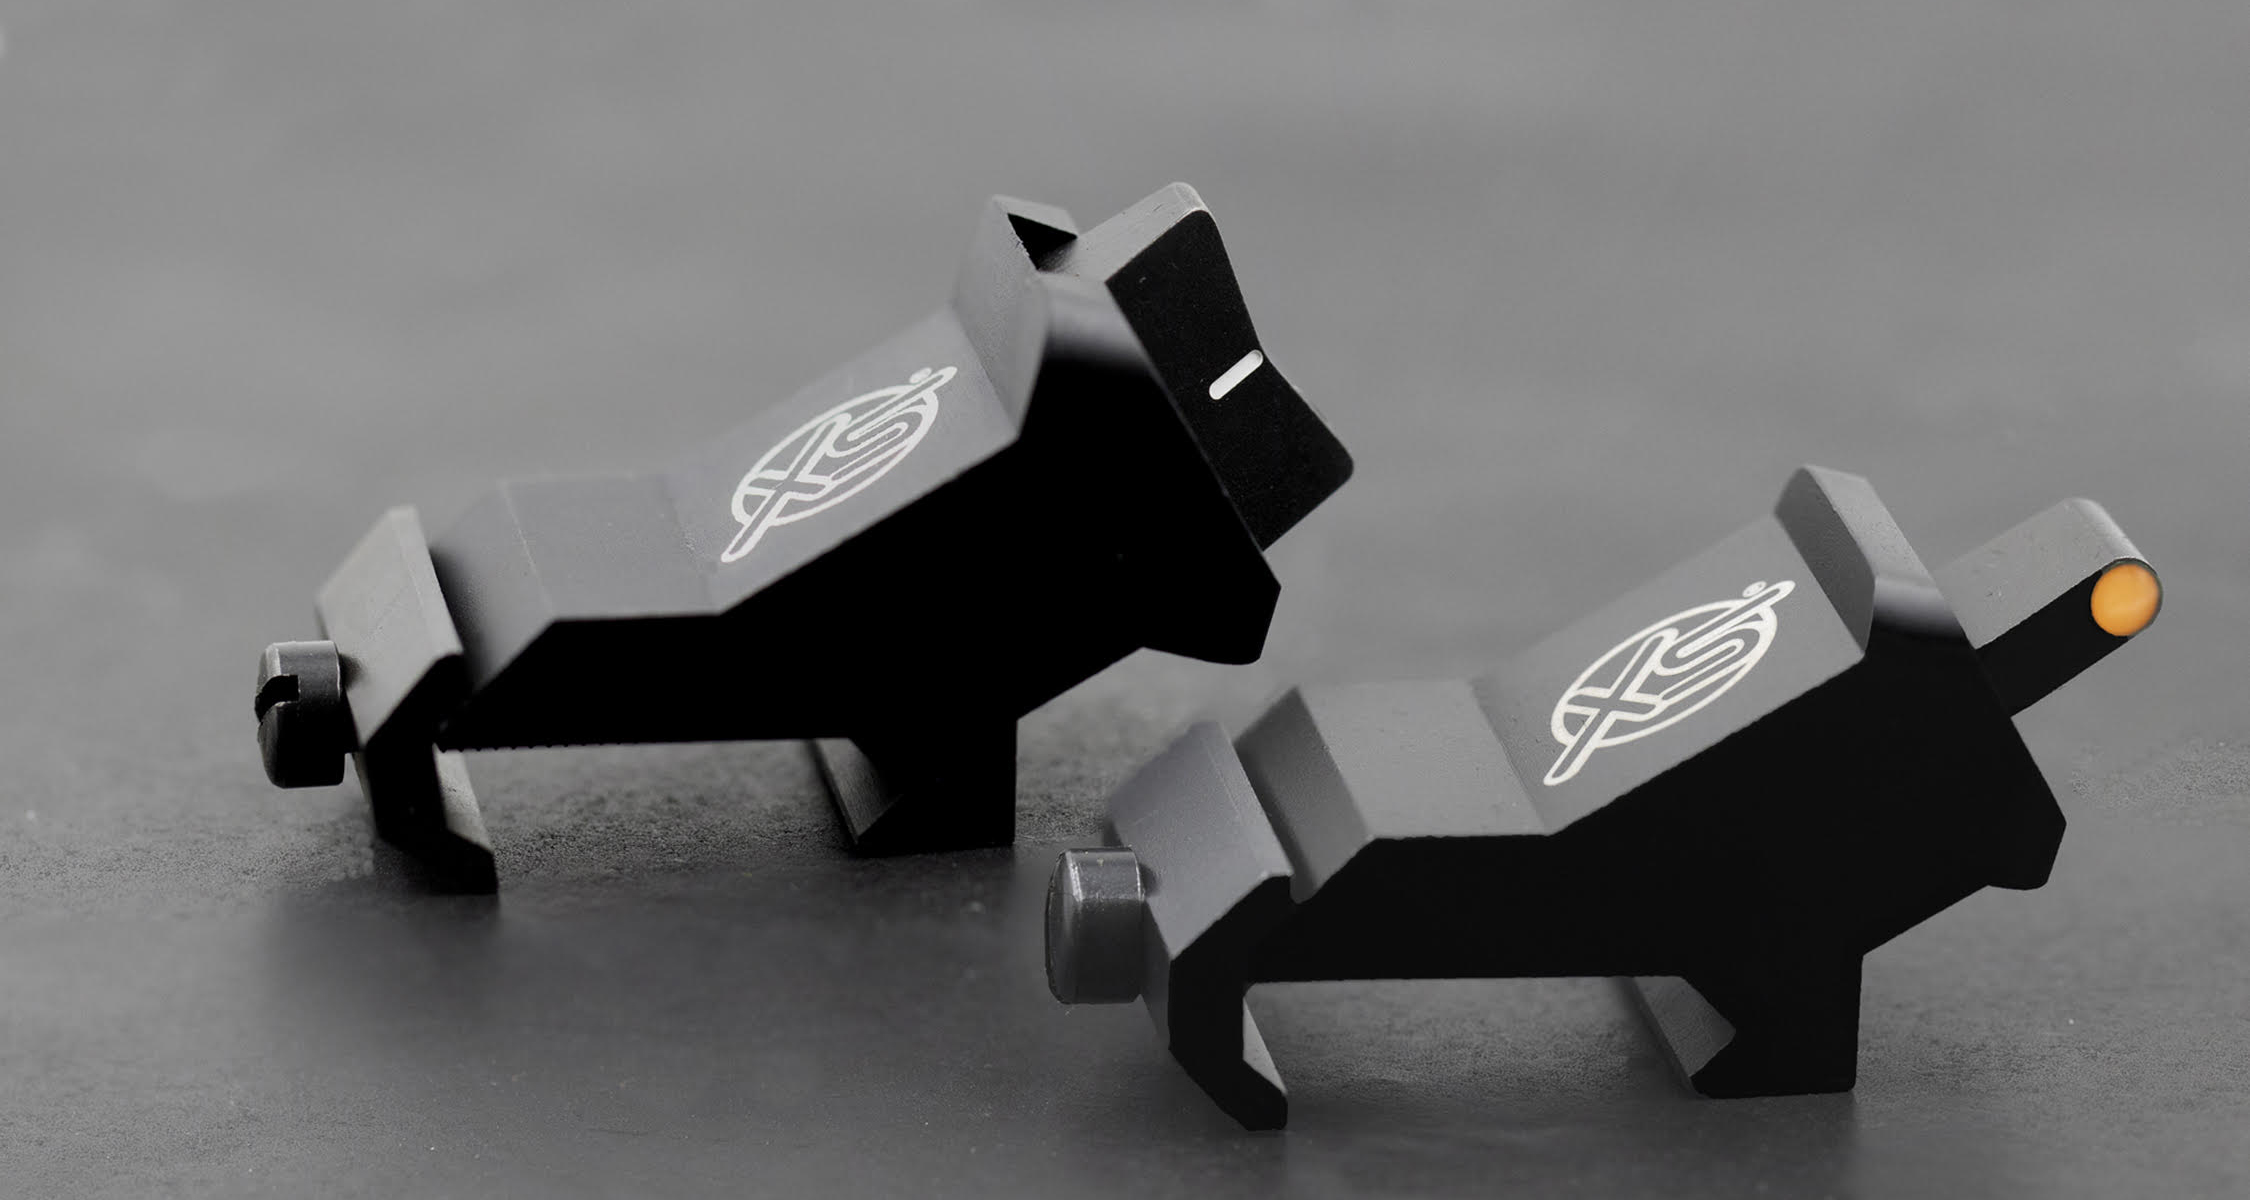 XS Sights Debuts XTI2 DXS Ember Standard Dot 45° Offset Iron Sights